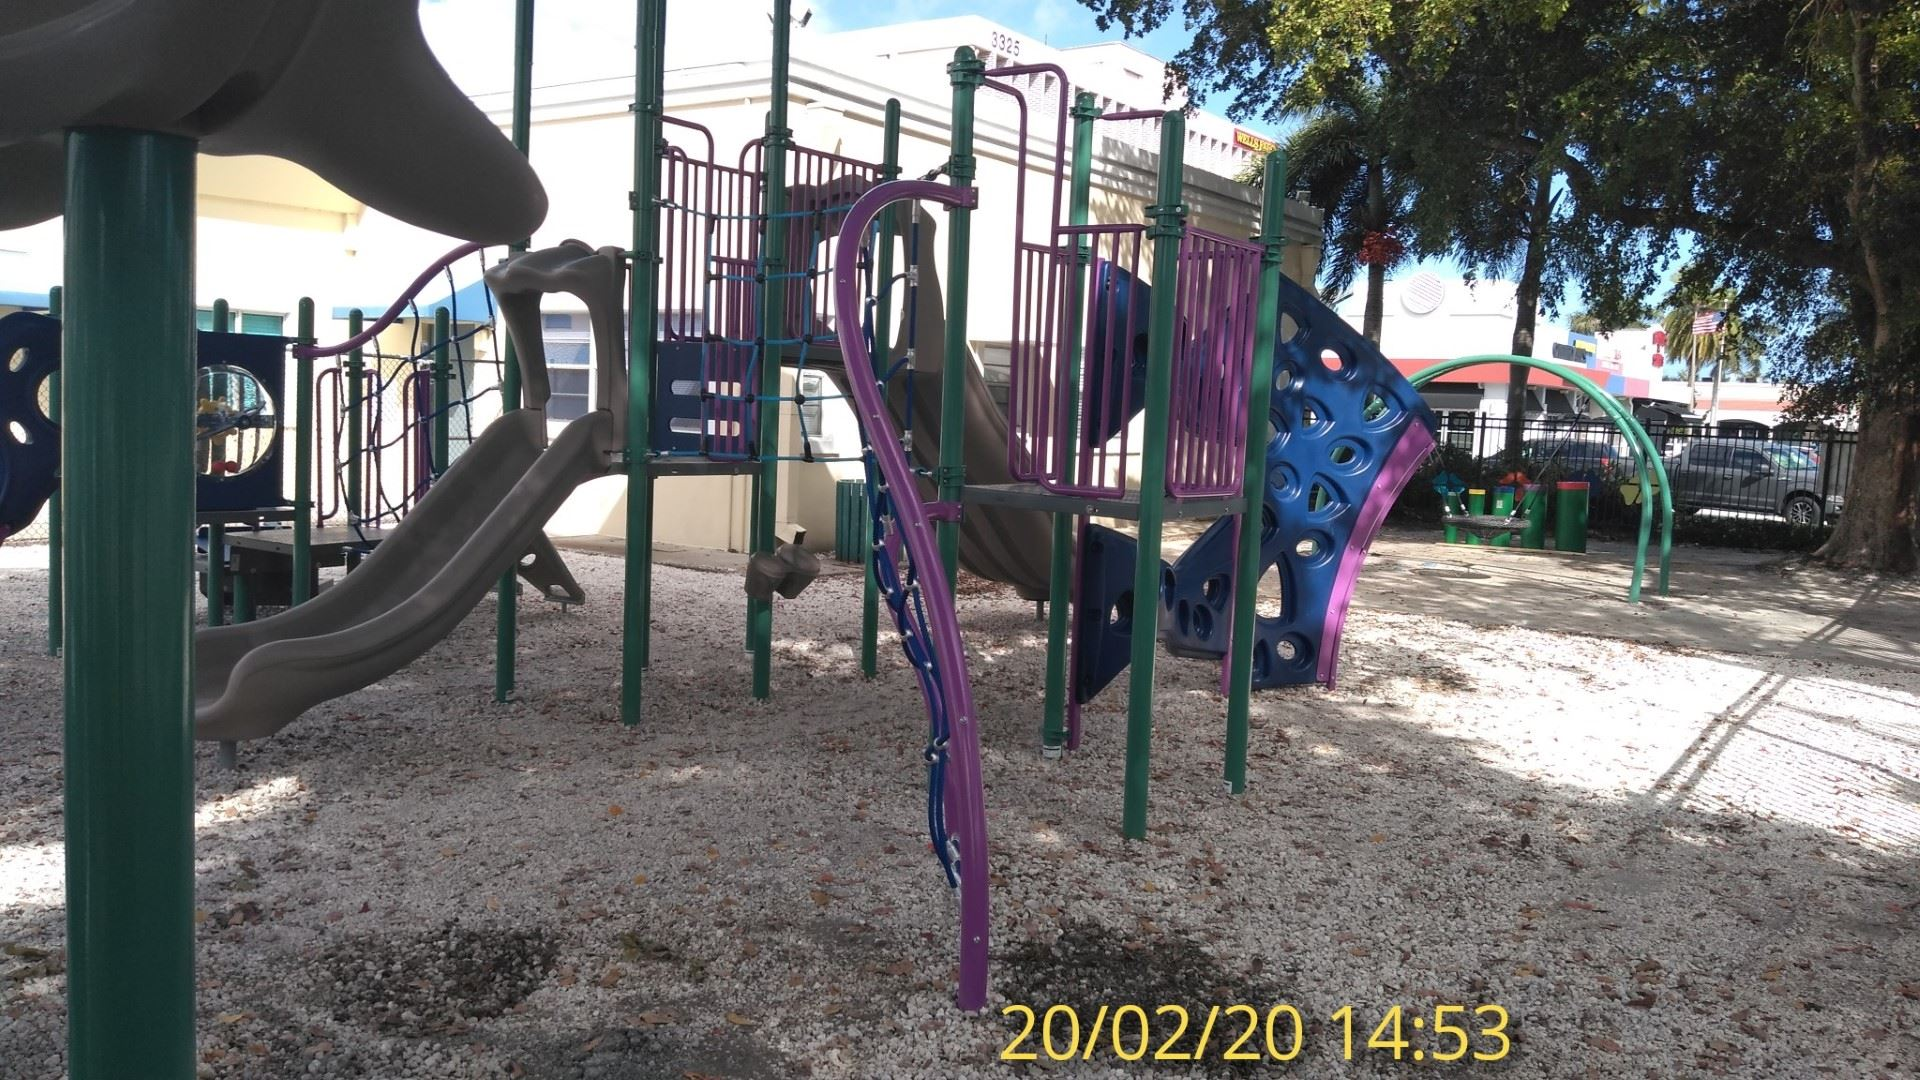 PLayground looking E 2/20/20